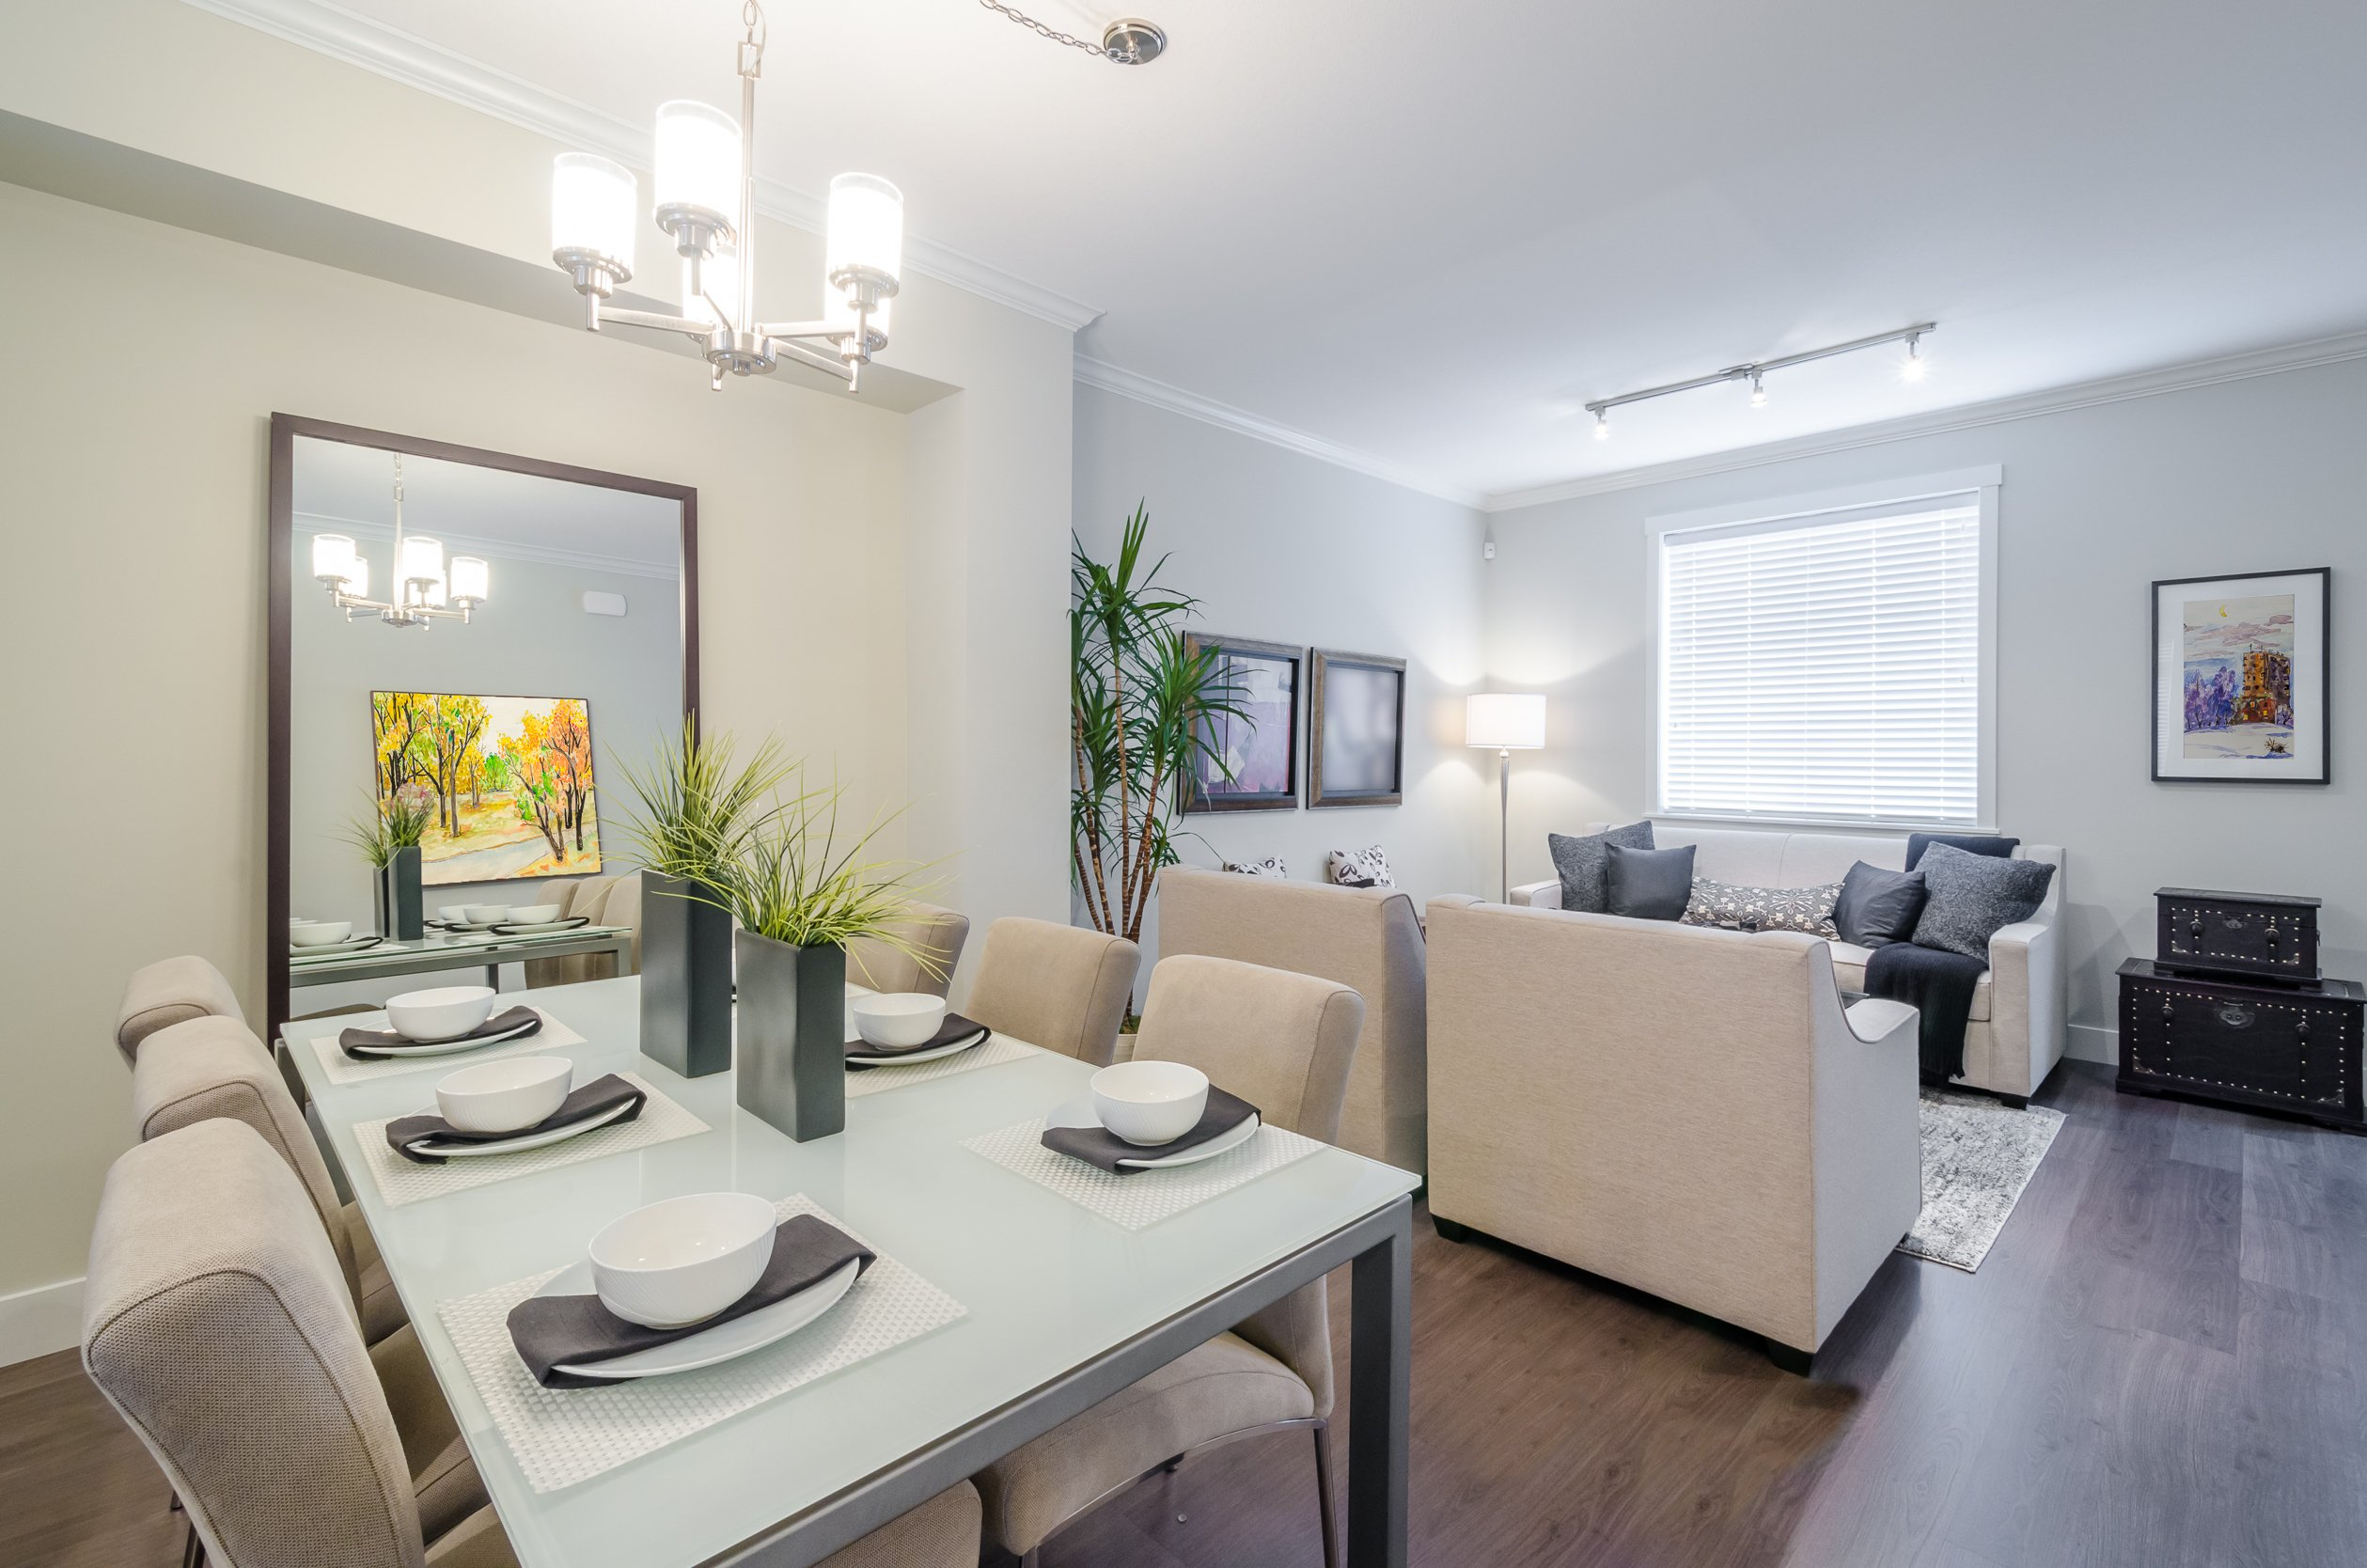 How To Separate Living Room And Dining Room Areas Homelane Blog